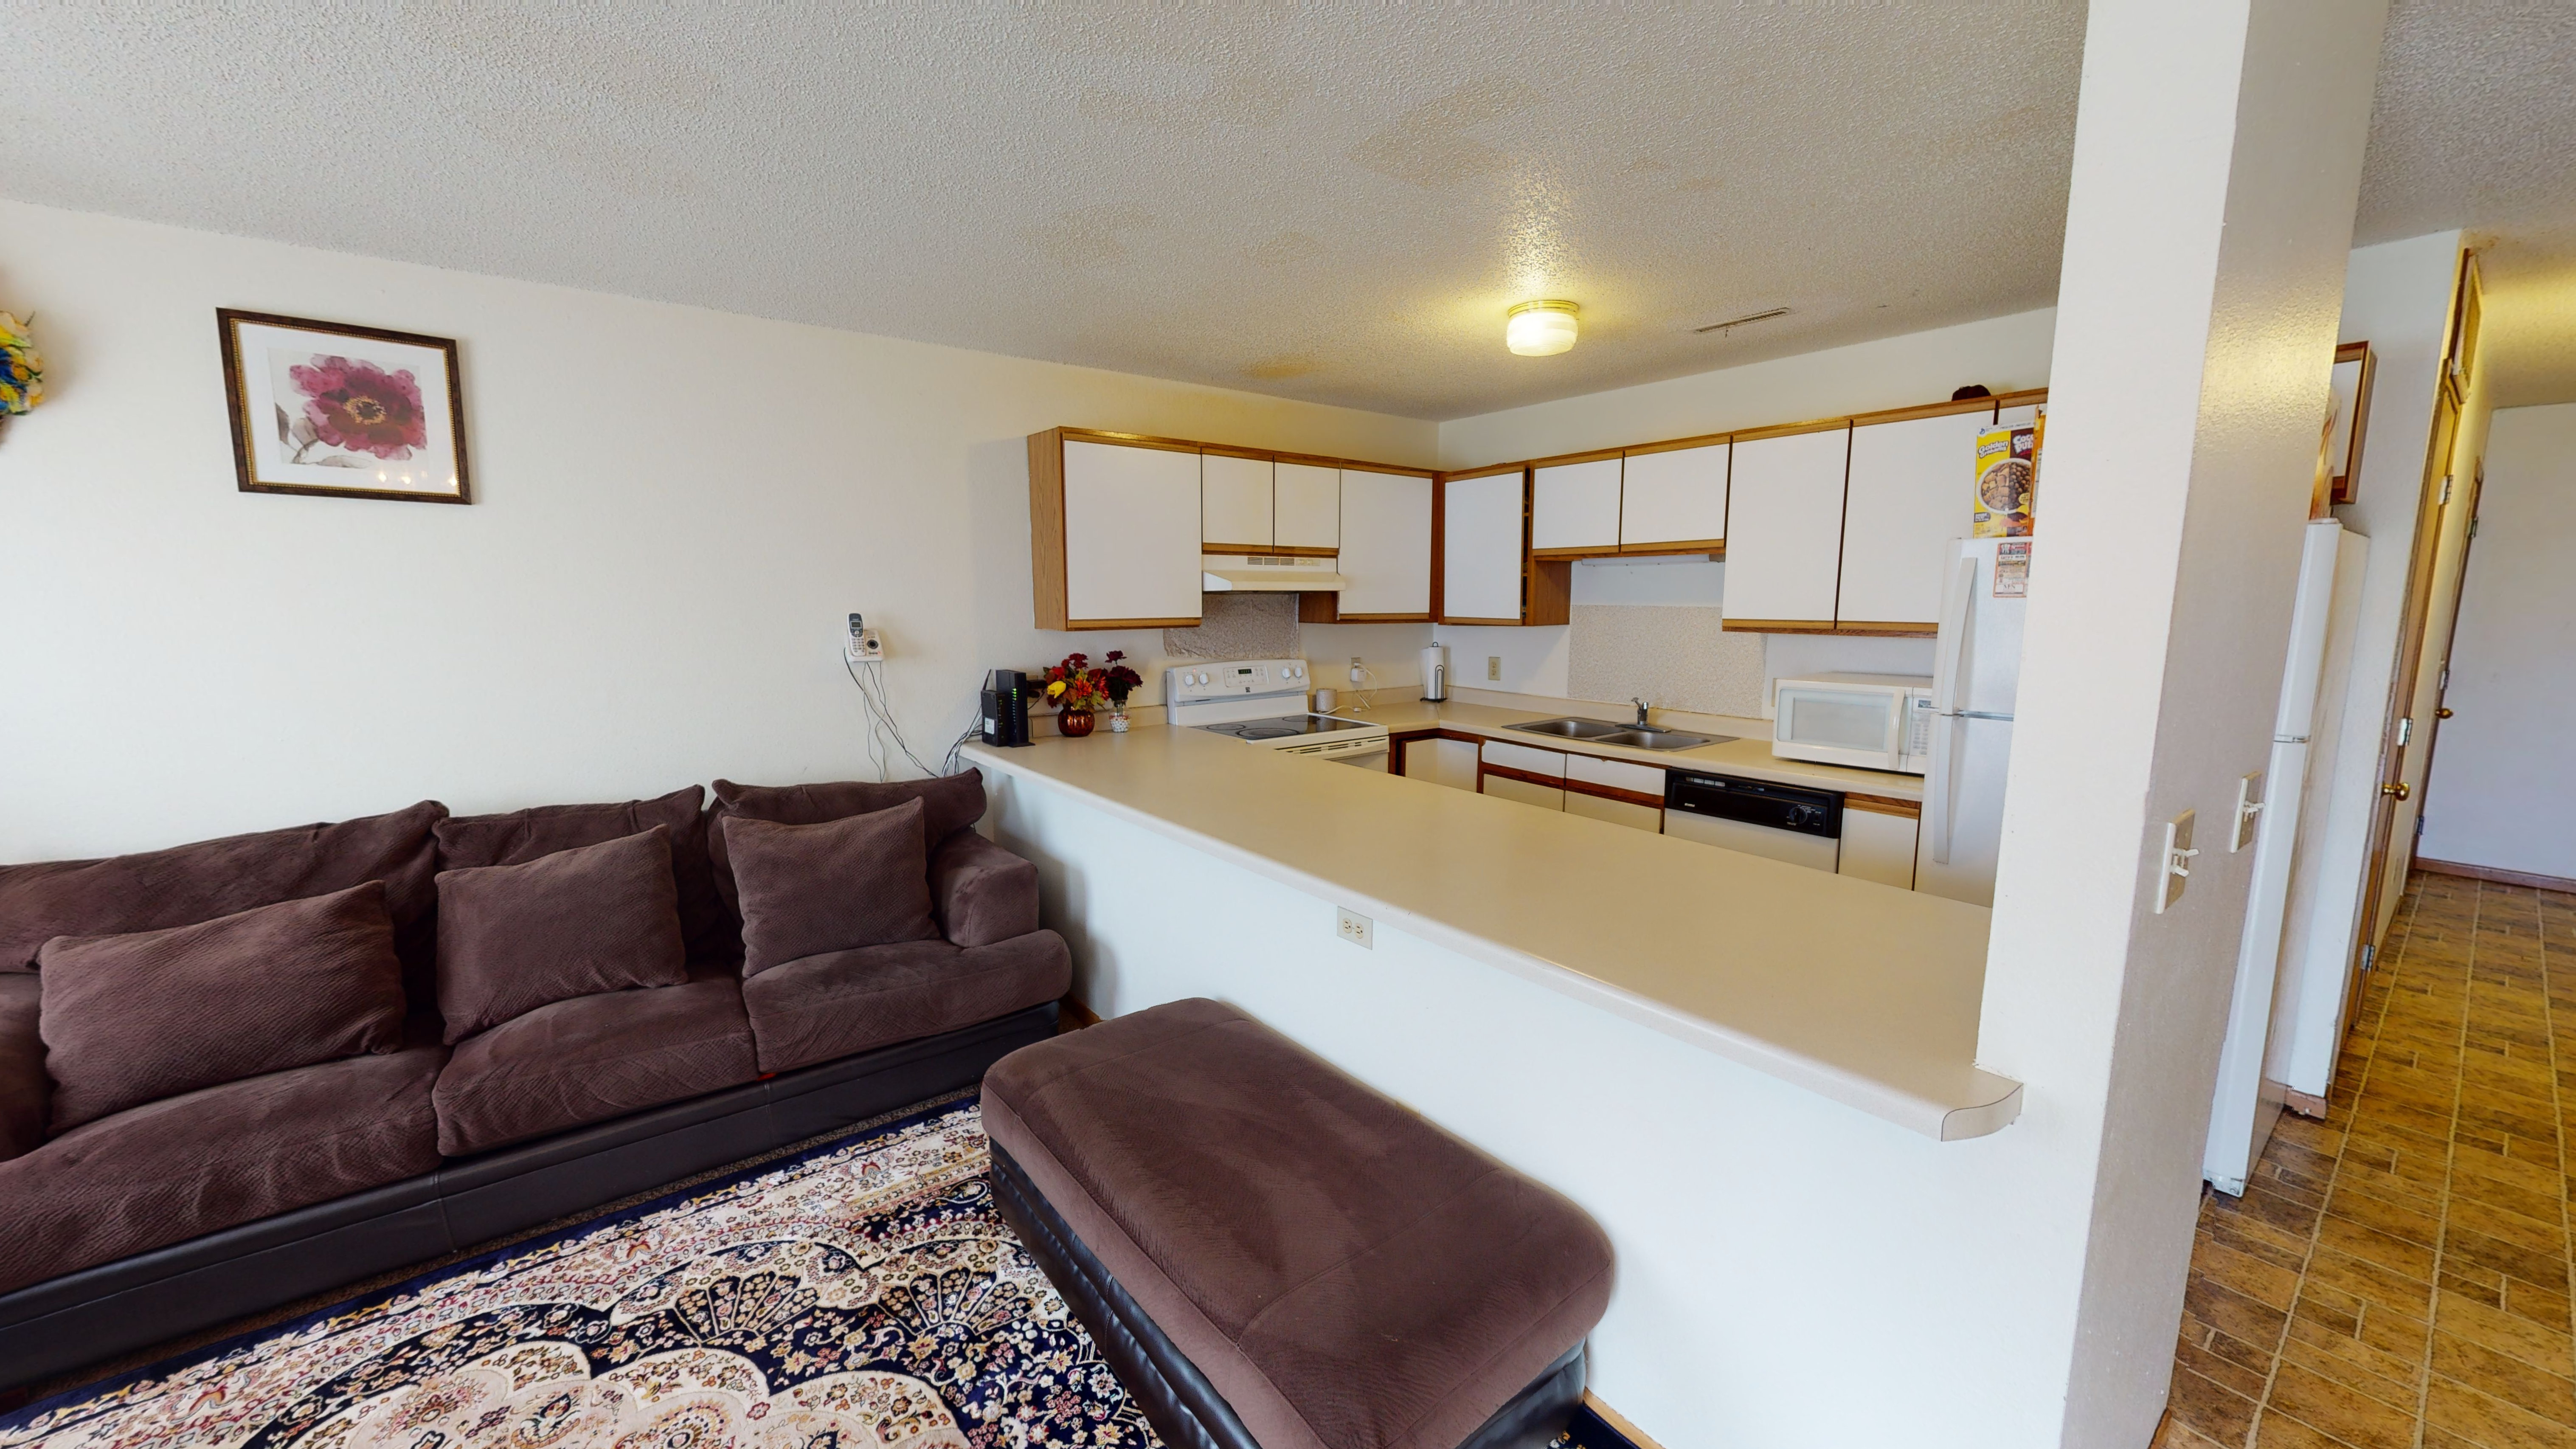 Townhomes-of-Pelican-Rapids-3-Bedroom-07